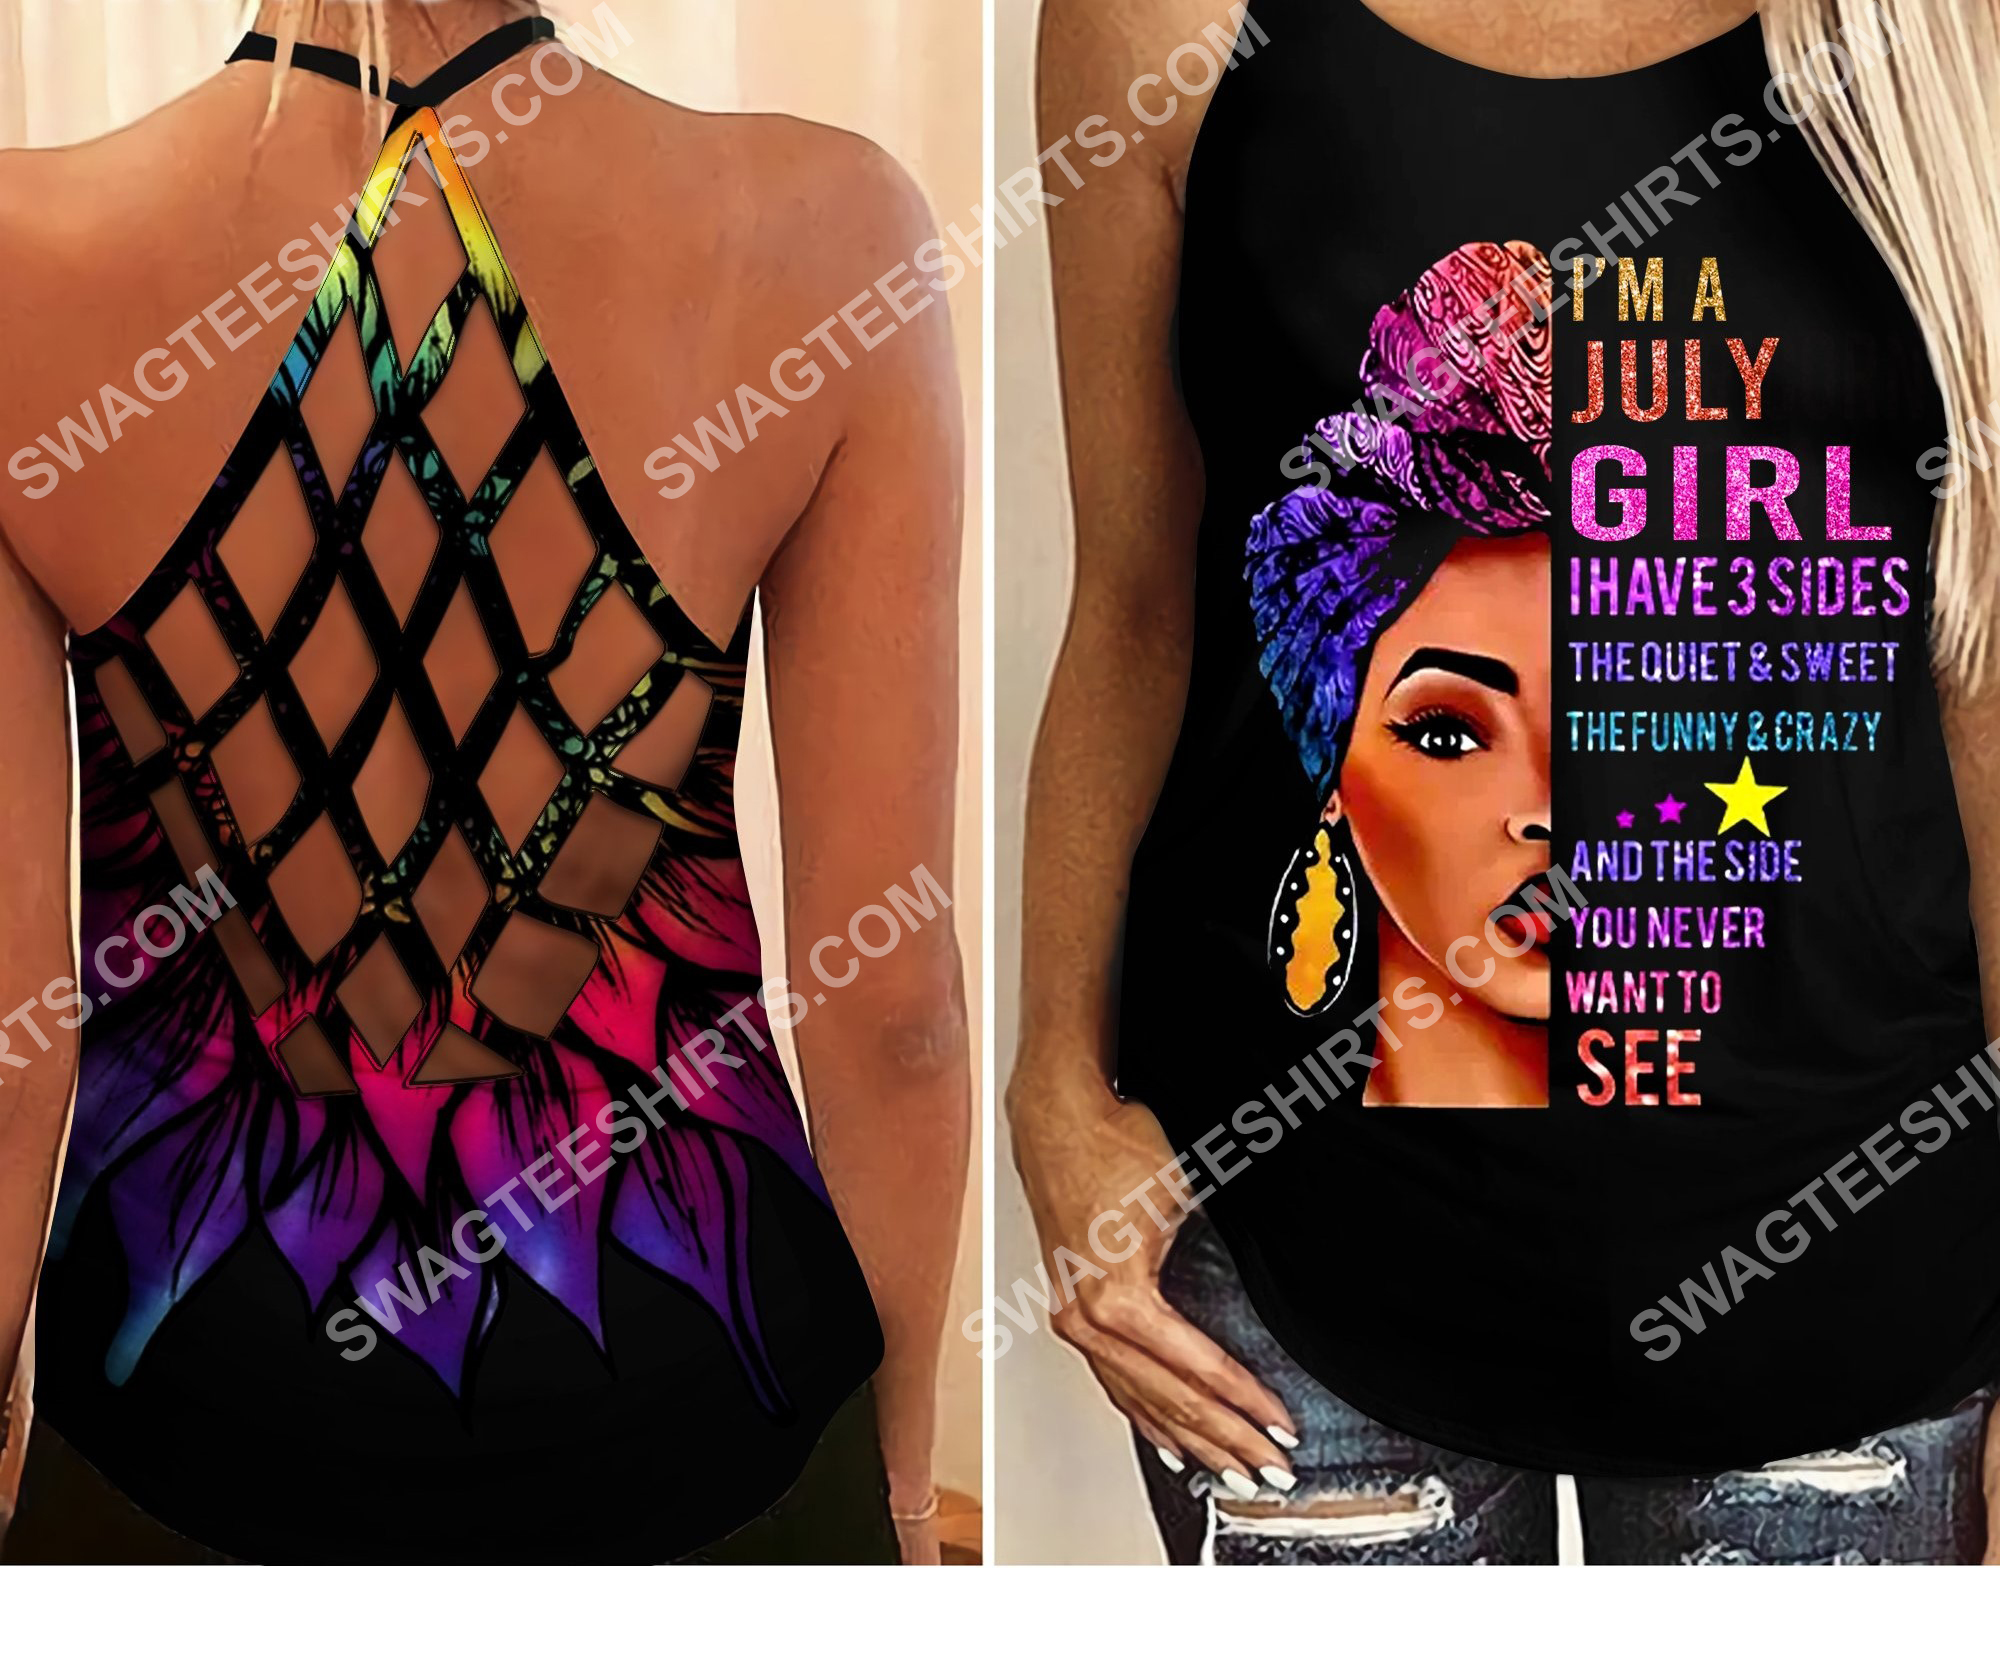 i'm a july girl i have 3 sides the quiet and sweet all over printed criss-cross tank top 2 - Copy (2)